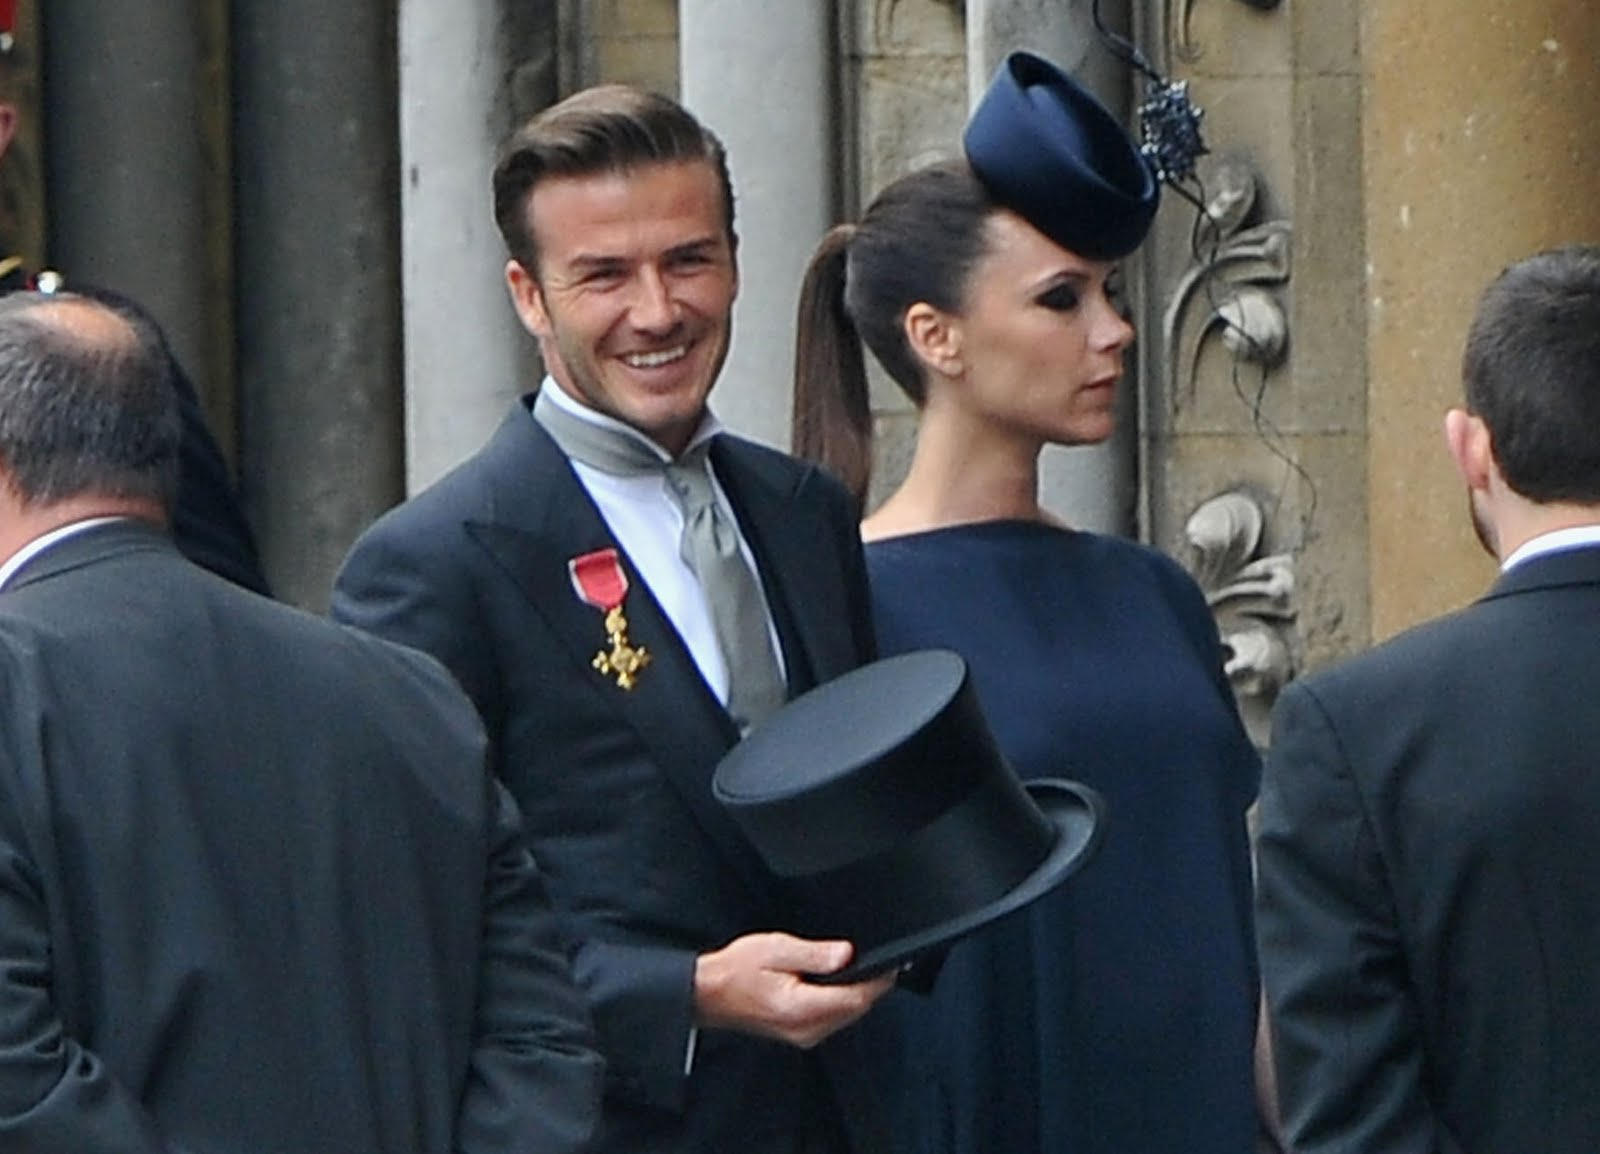 Photographs Of David Beckham And Victoria At Wedding Prince William With Kate Middleton